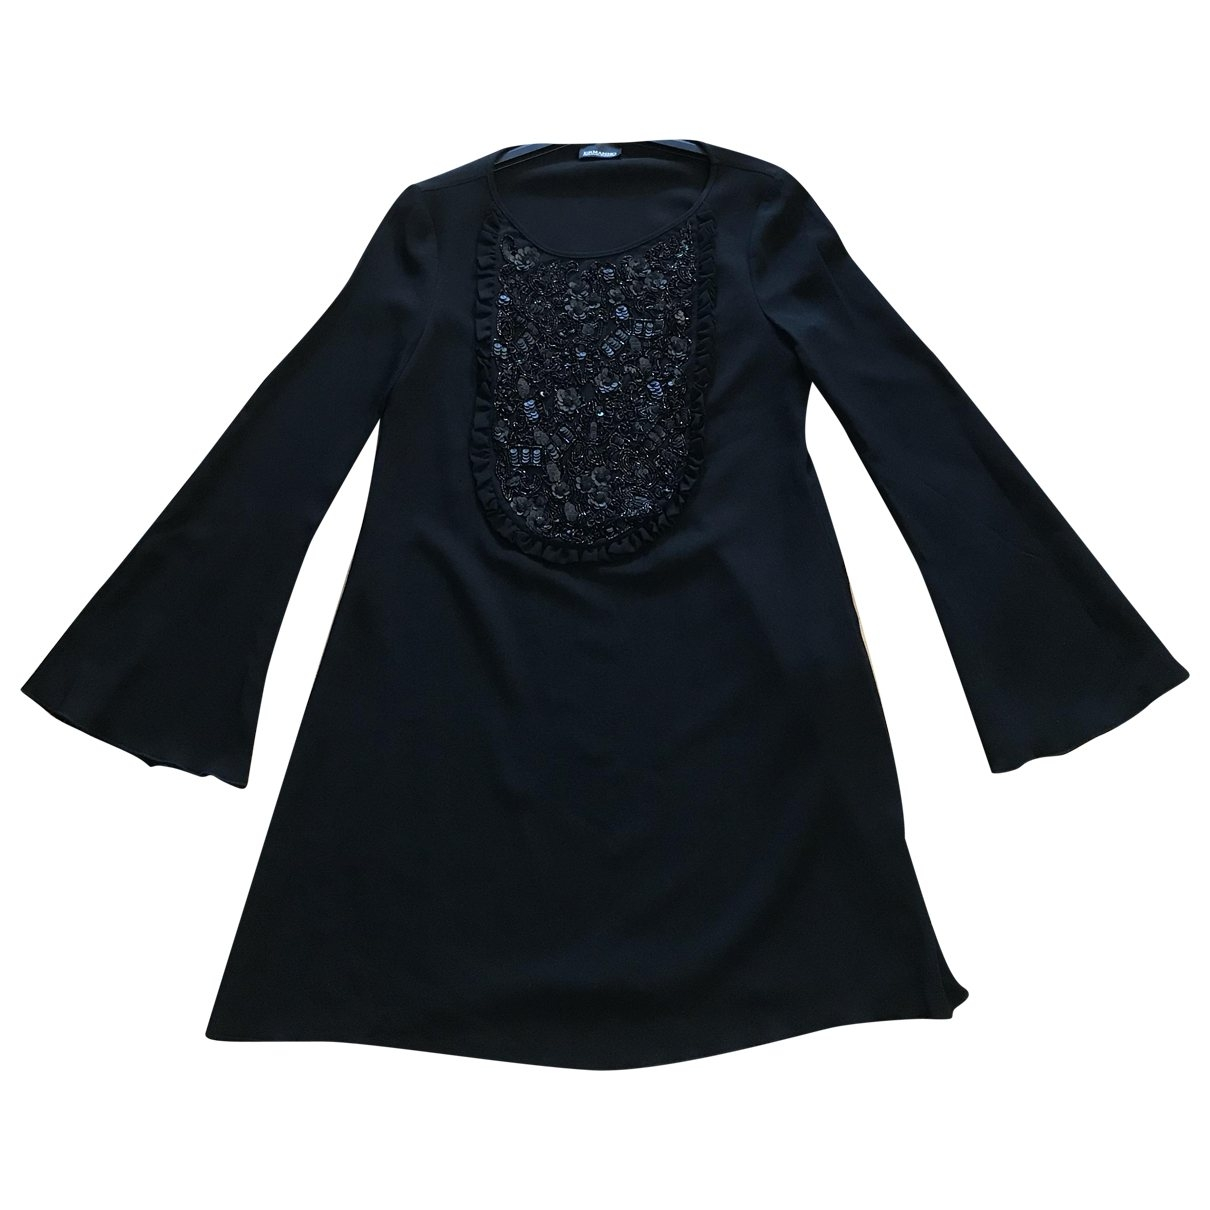 Ermanno Scervino \N Black dress for Women 40 IT